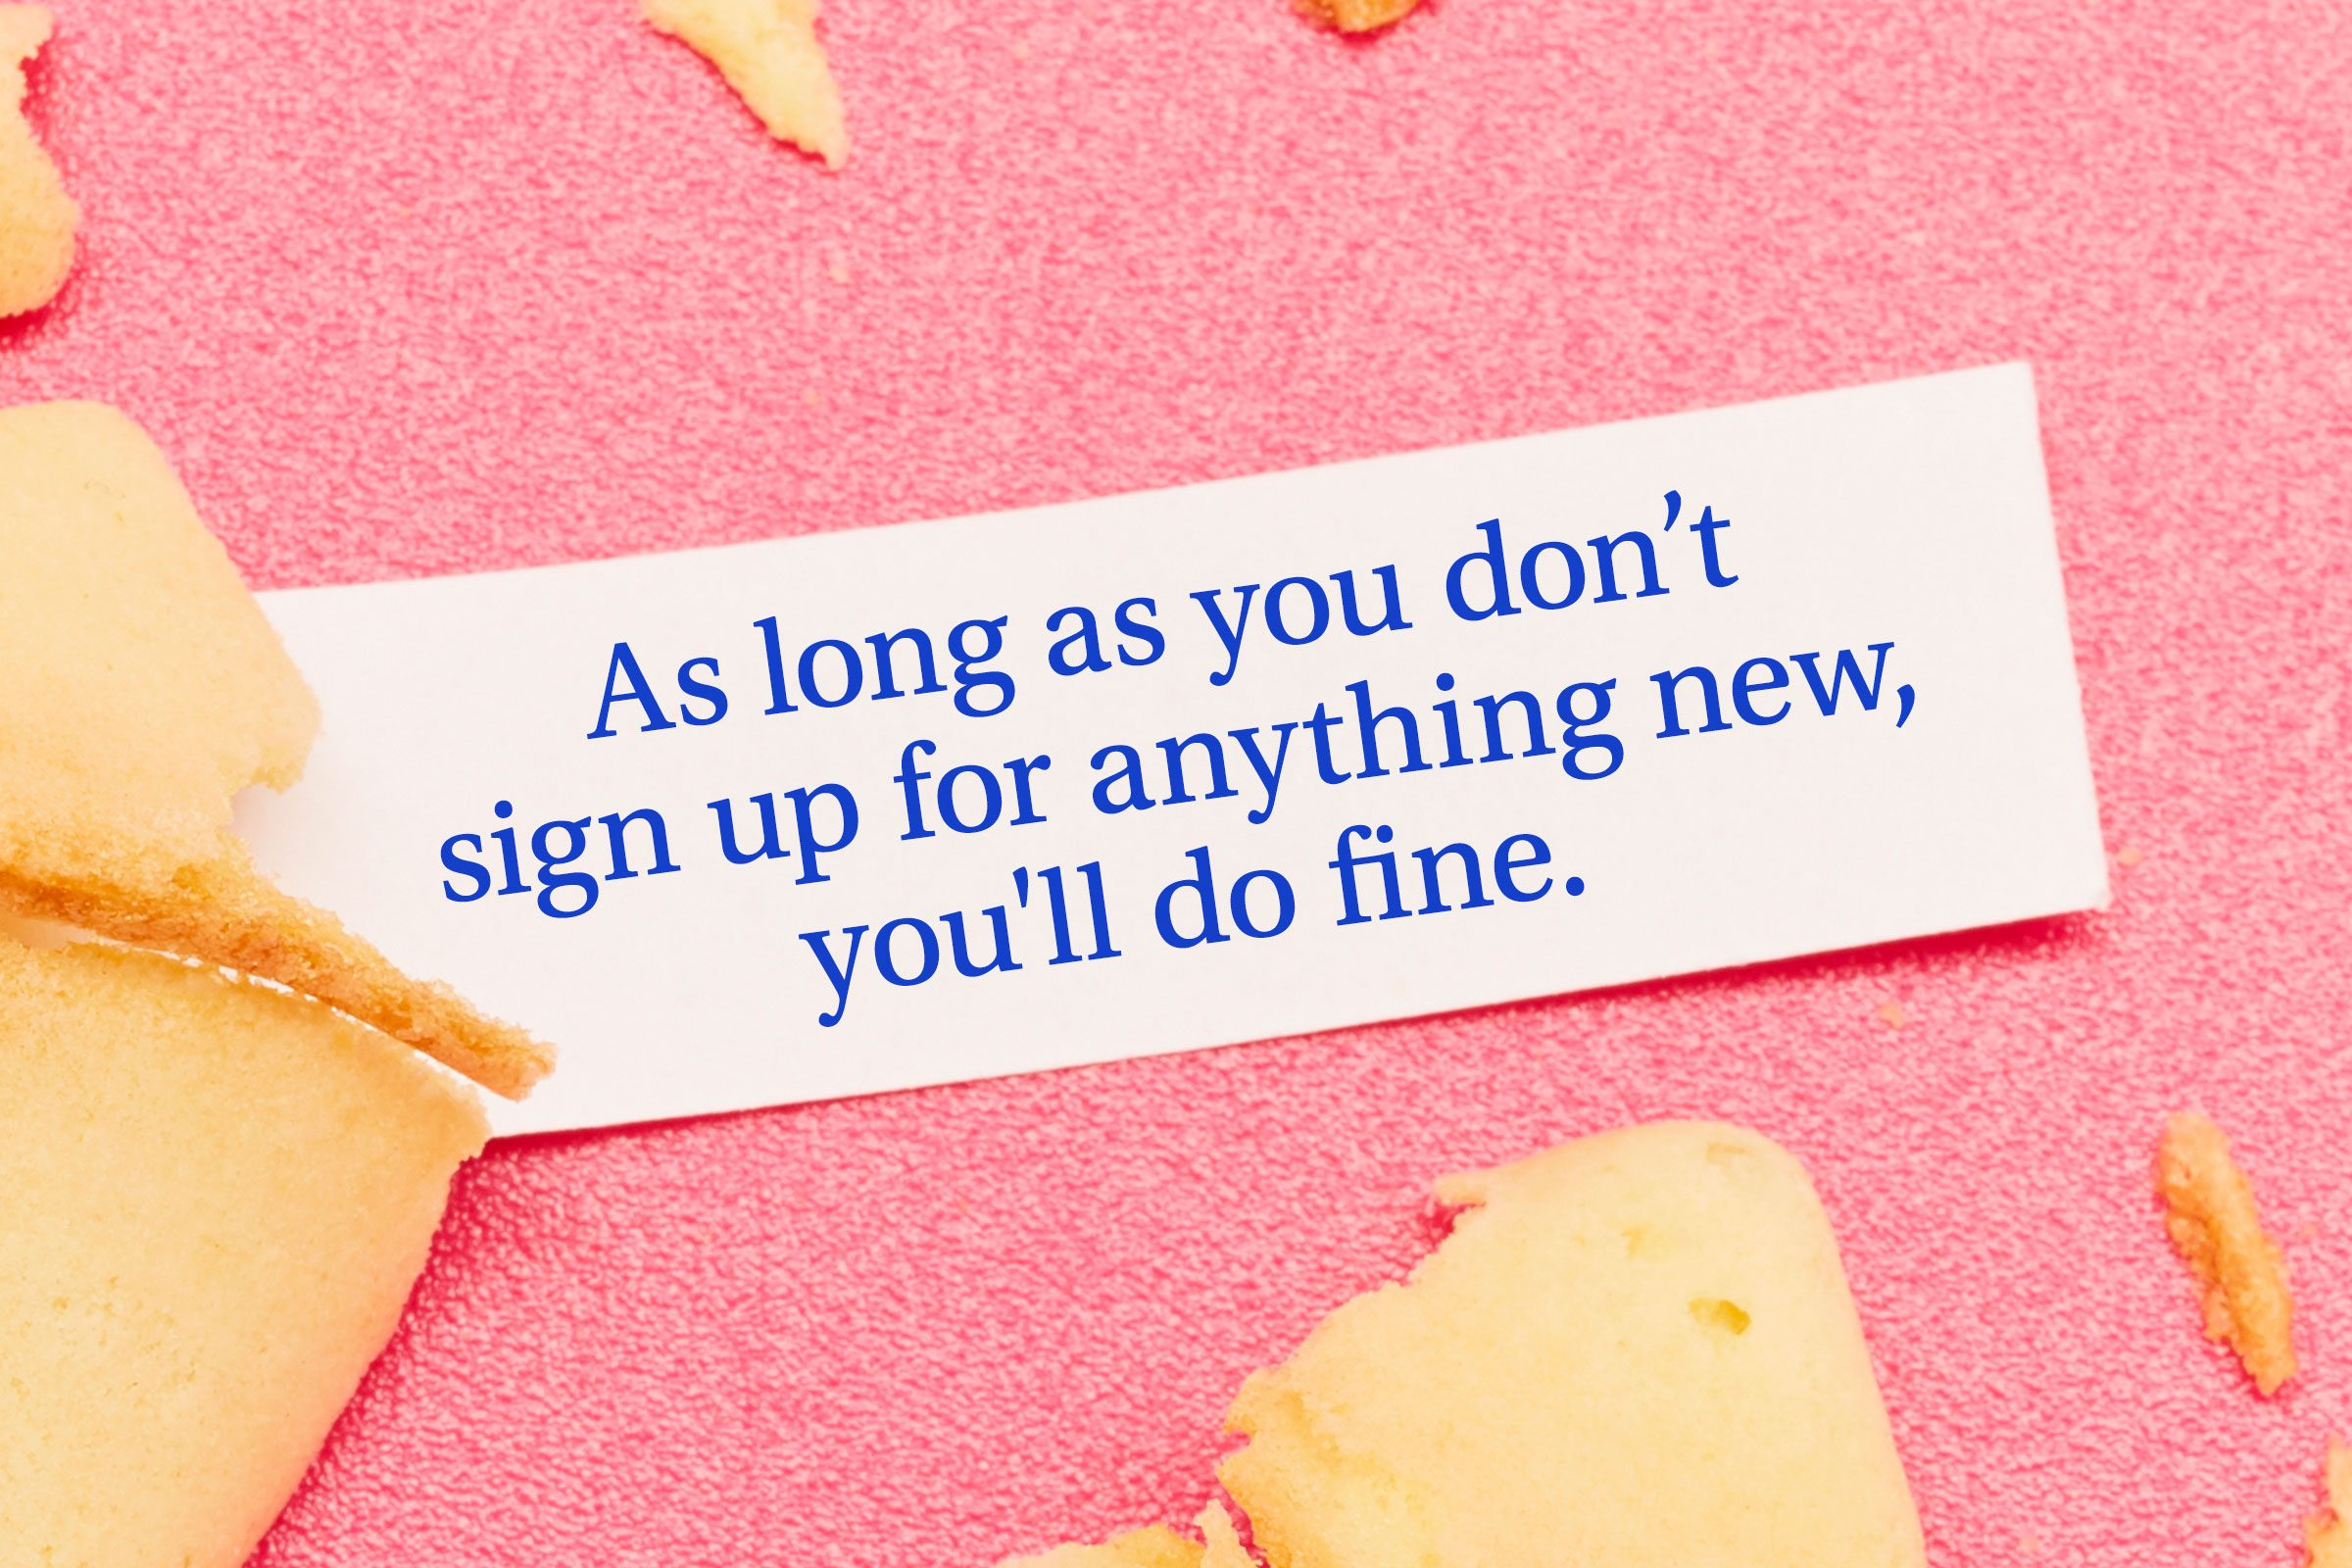 For image: As long as you don't sign up for anything new, you'll do fine.